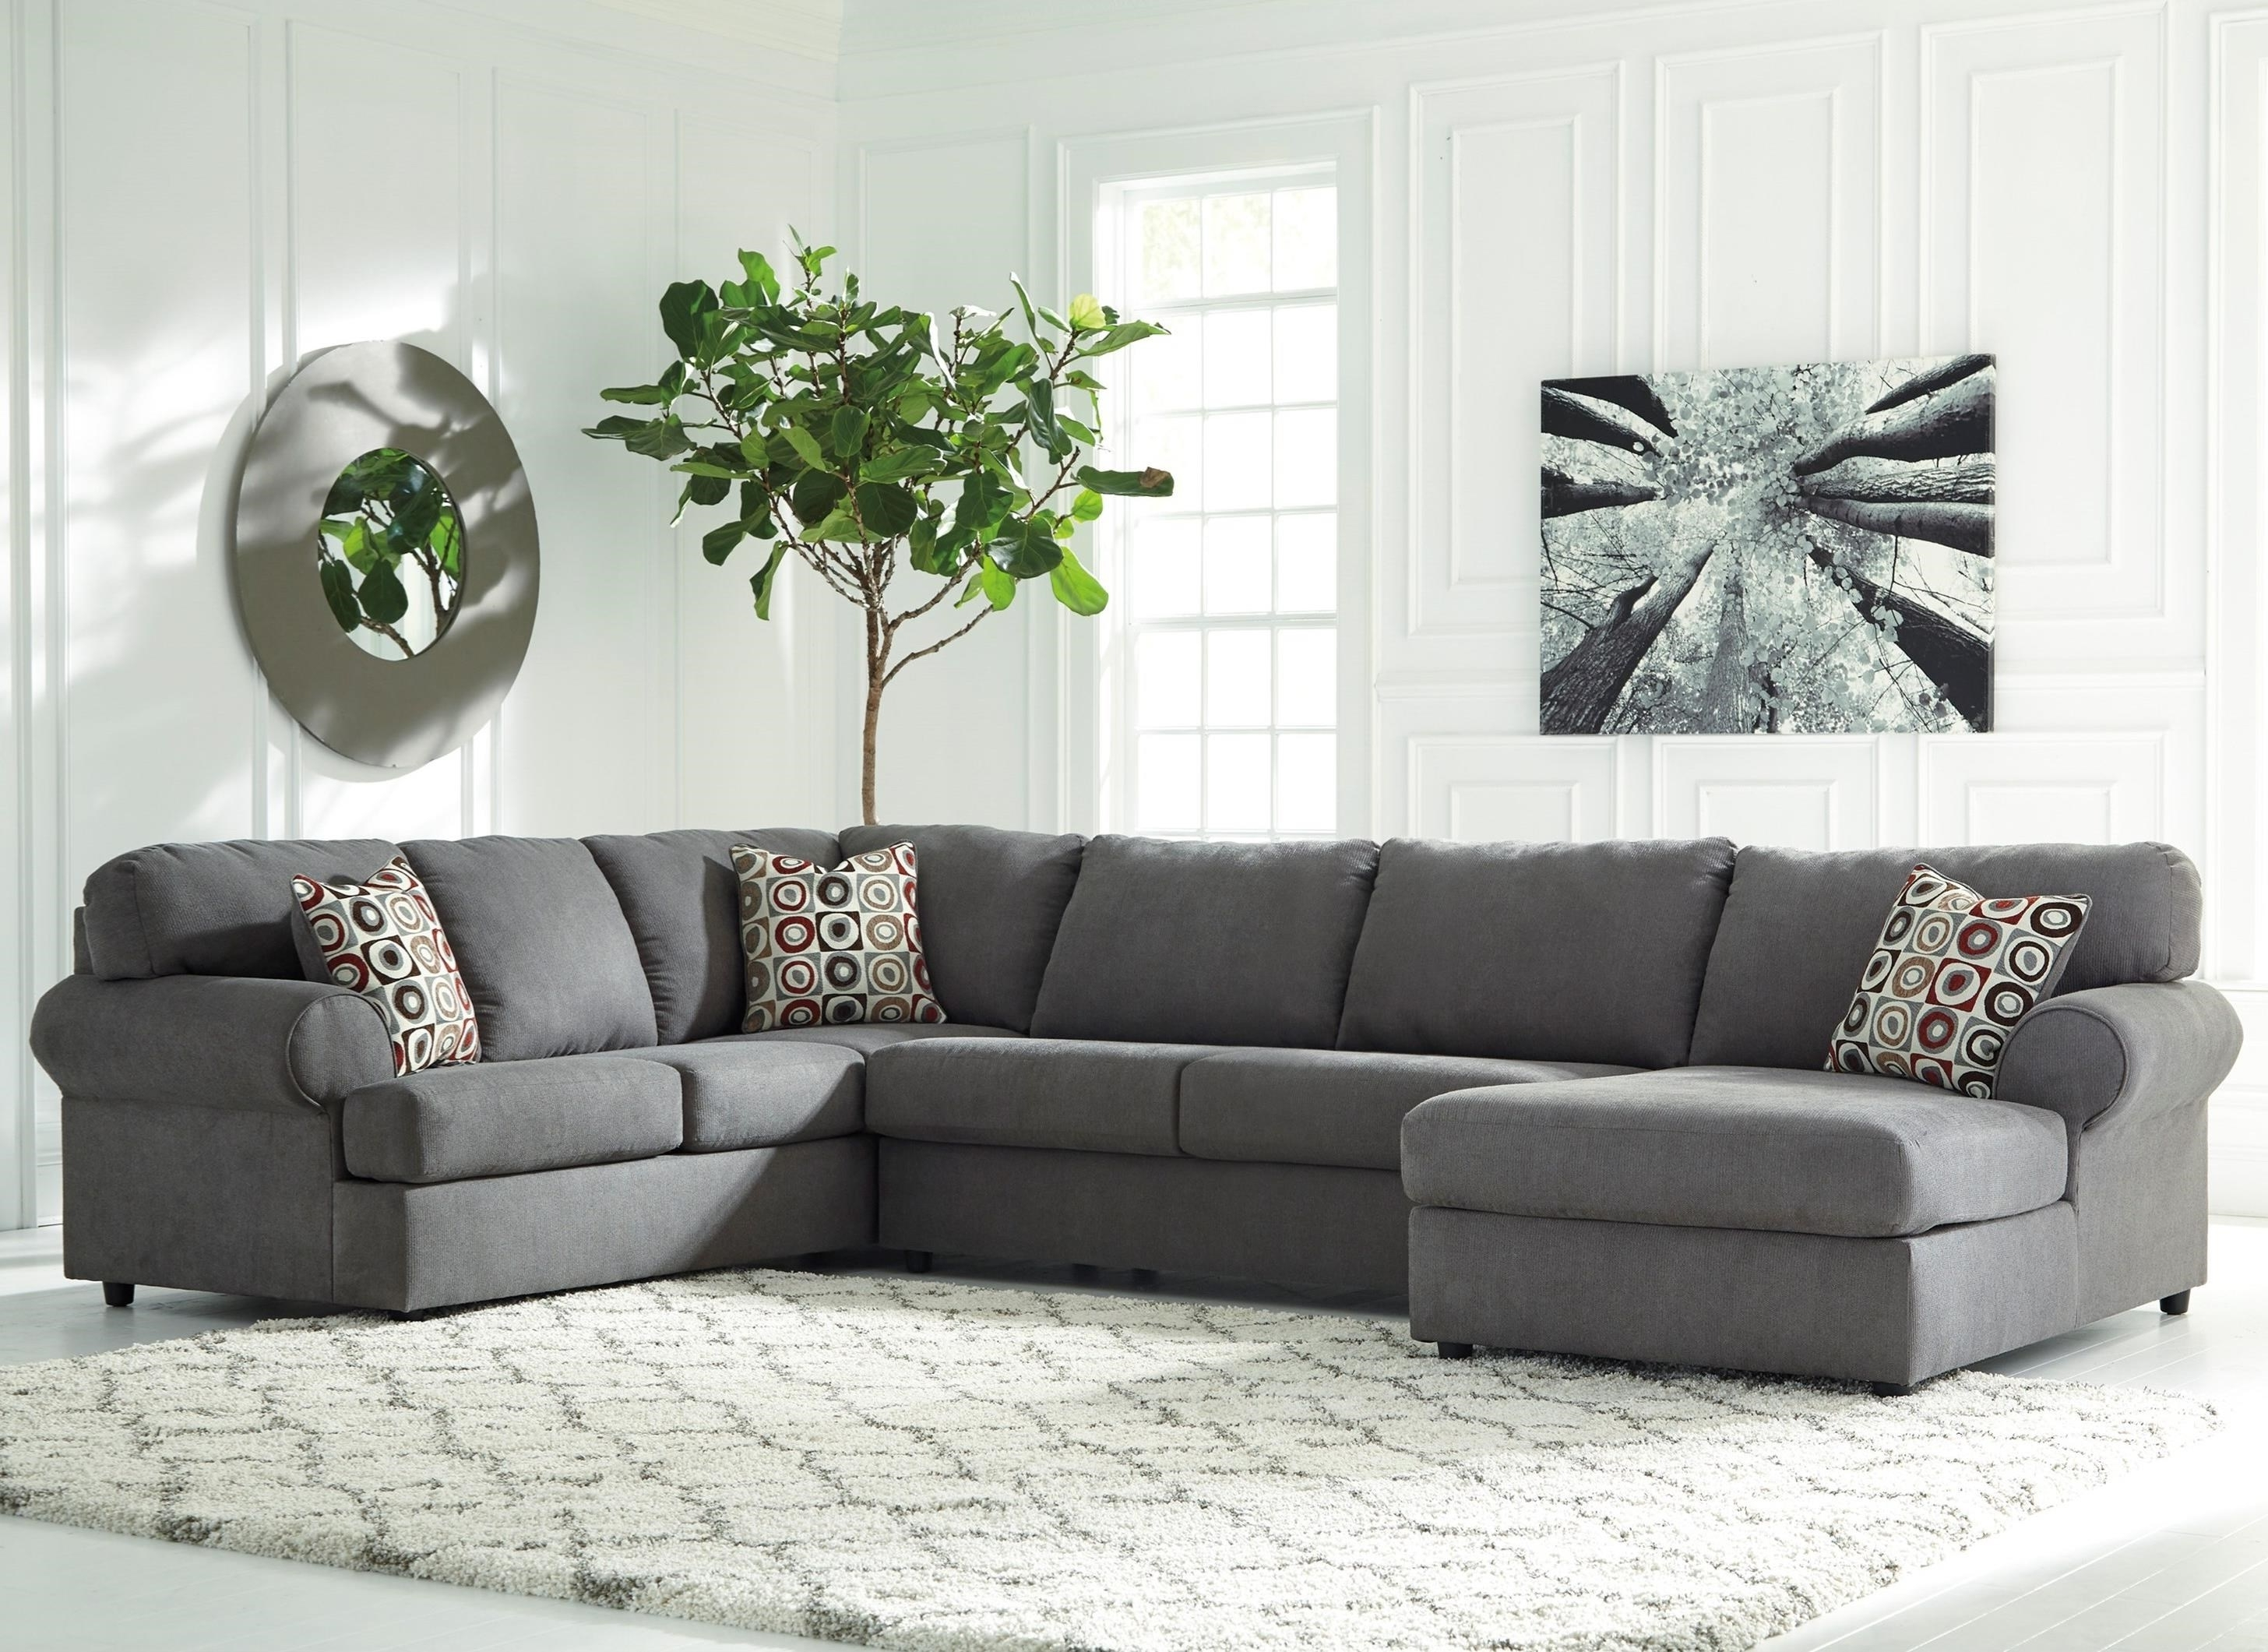 Most Recently Released Signature Designashley Jayceon 3 Piece Sectional With Left Throughout 3 Piece Sectionals With Chaise (View 6 of 15)